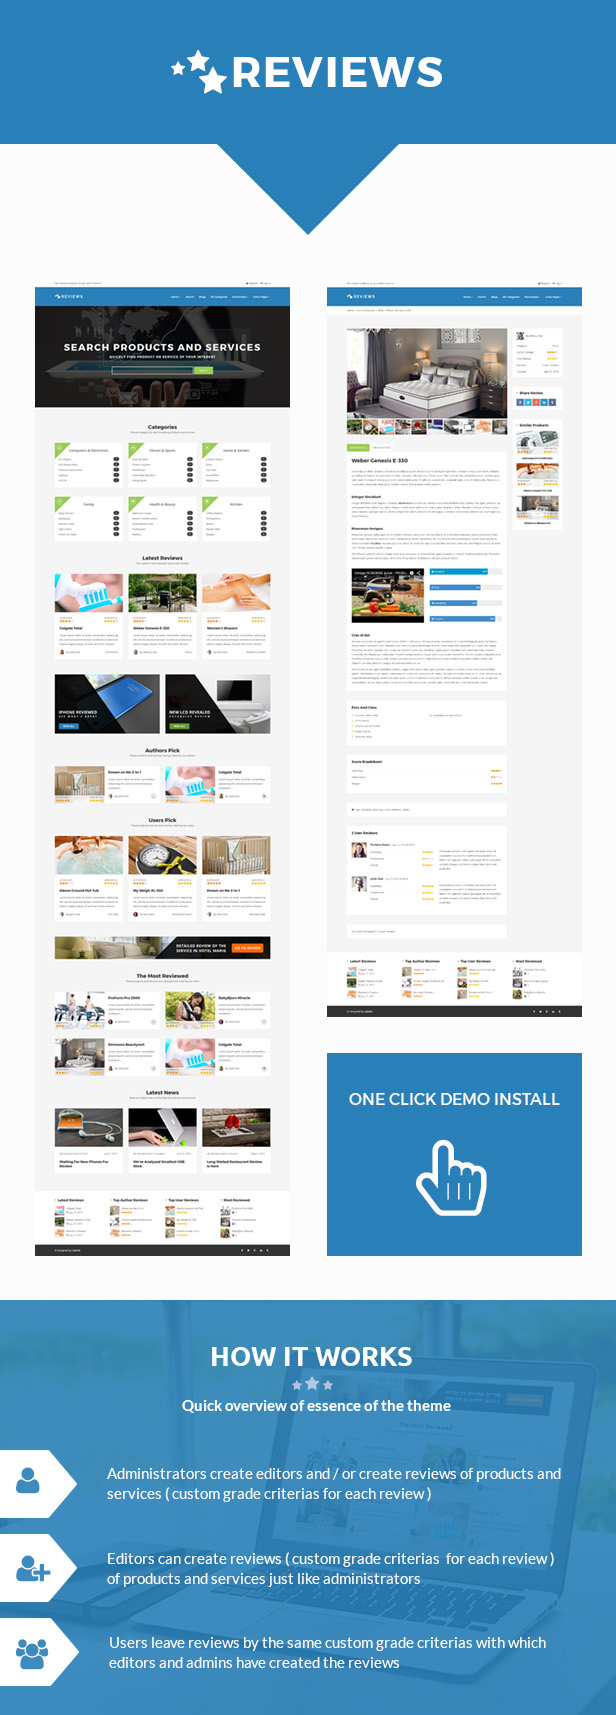 Reviews - Products And Services Review WP Theme - 2